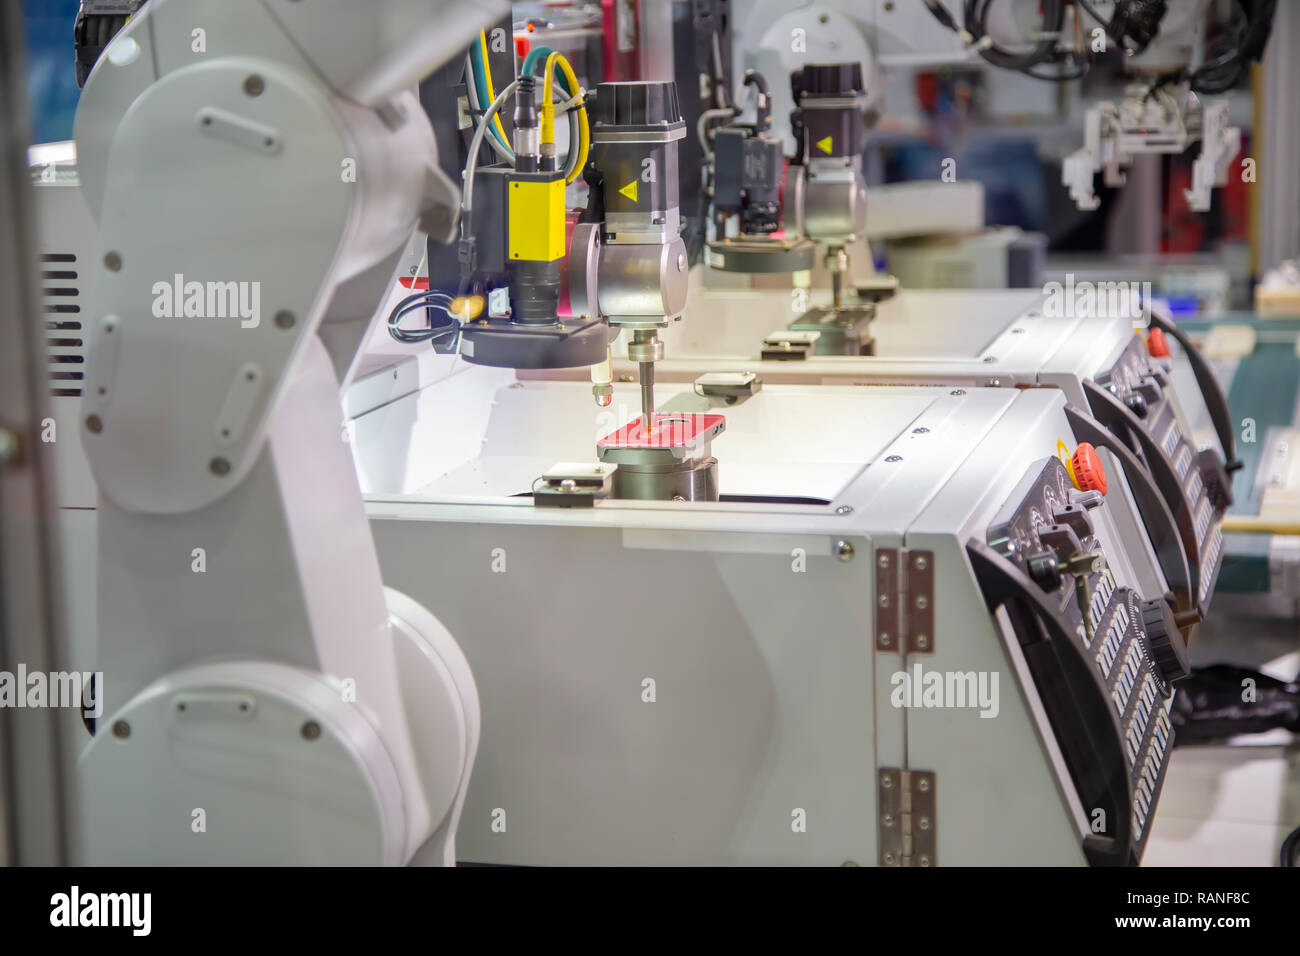 Robotic arm loading and unloading mobile phone case to engrave in CNC laser machine - Stock Image